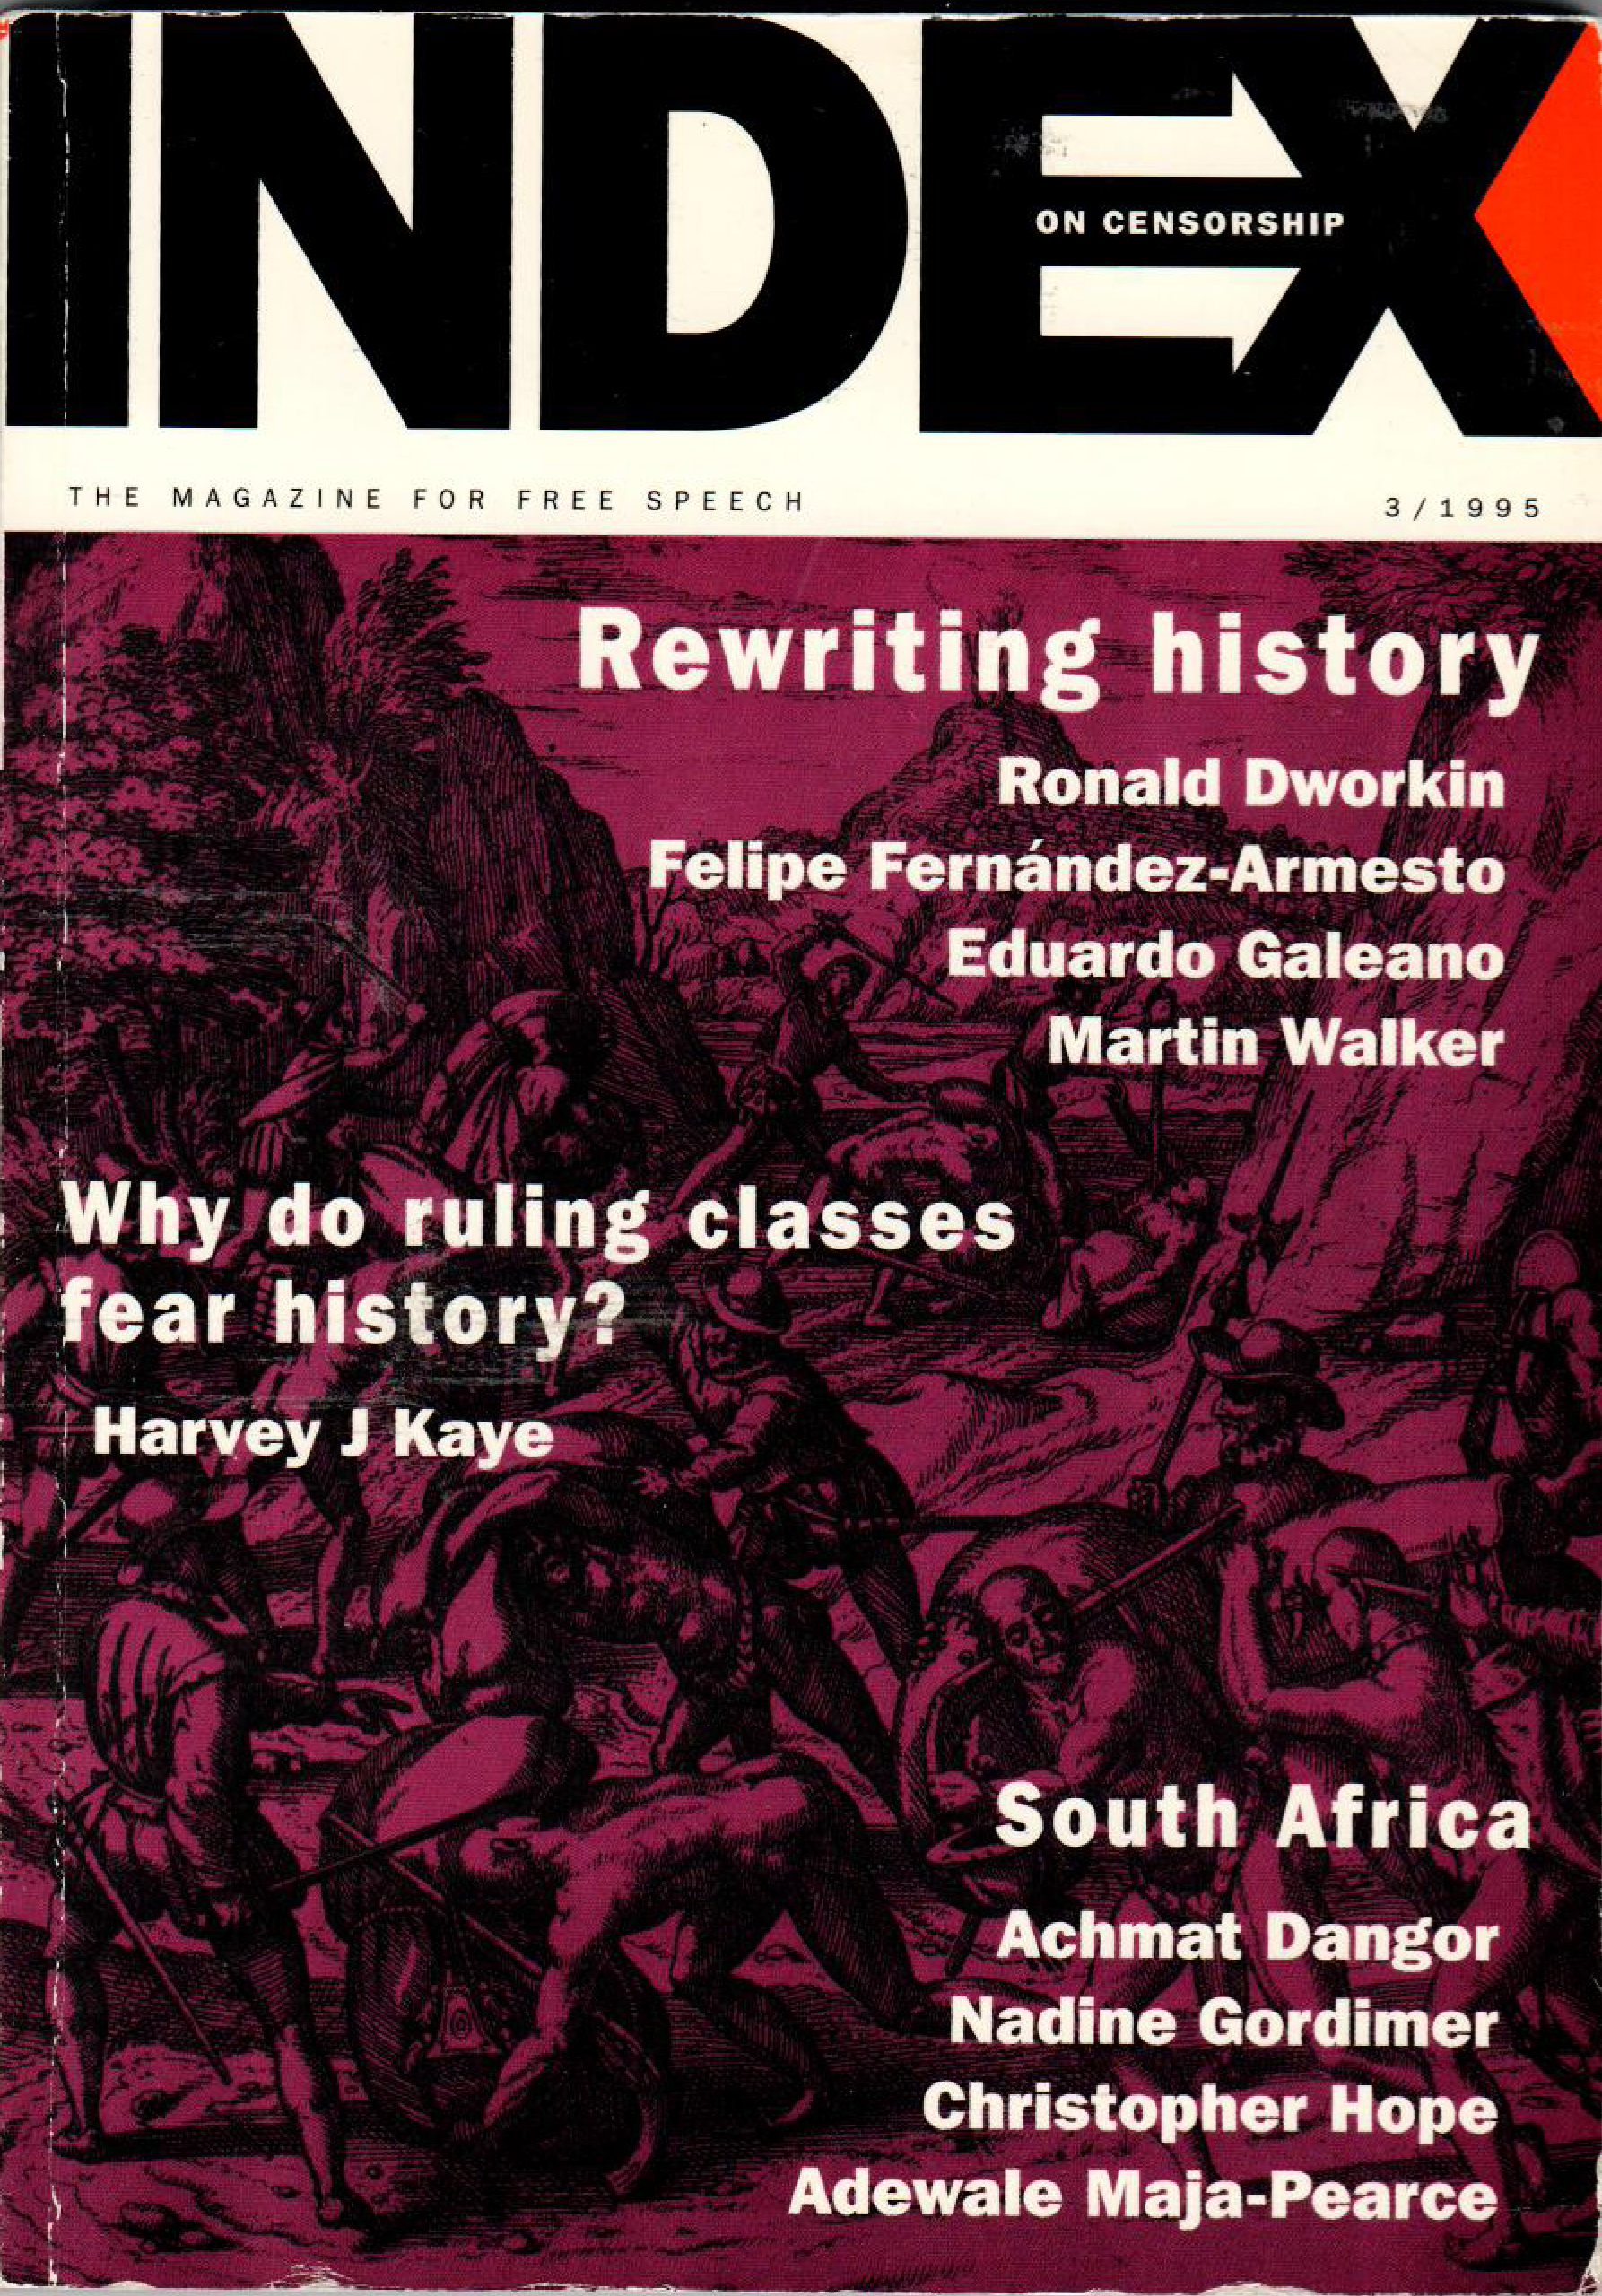 Rewriting history, the May 1995 issue of Index on Censorship magazine